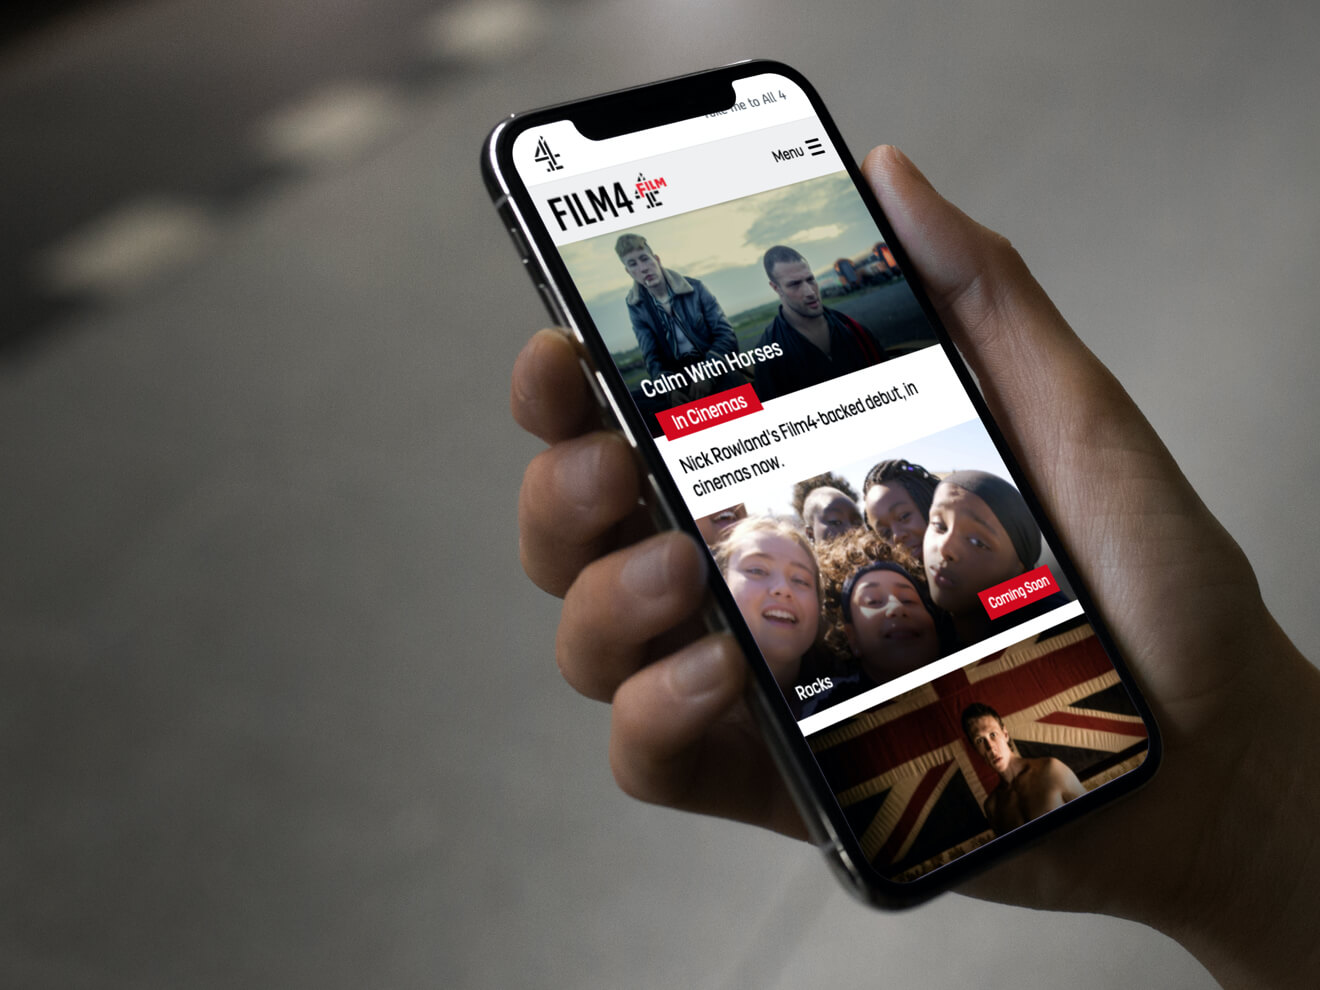 Film4 website in action on a phone